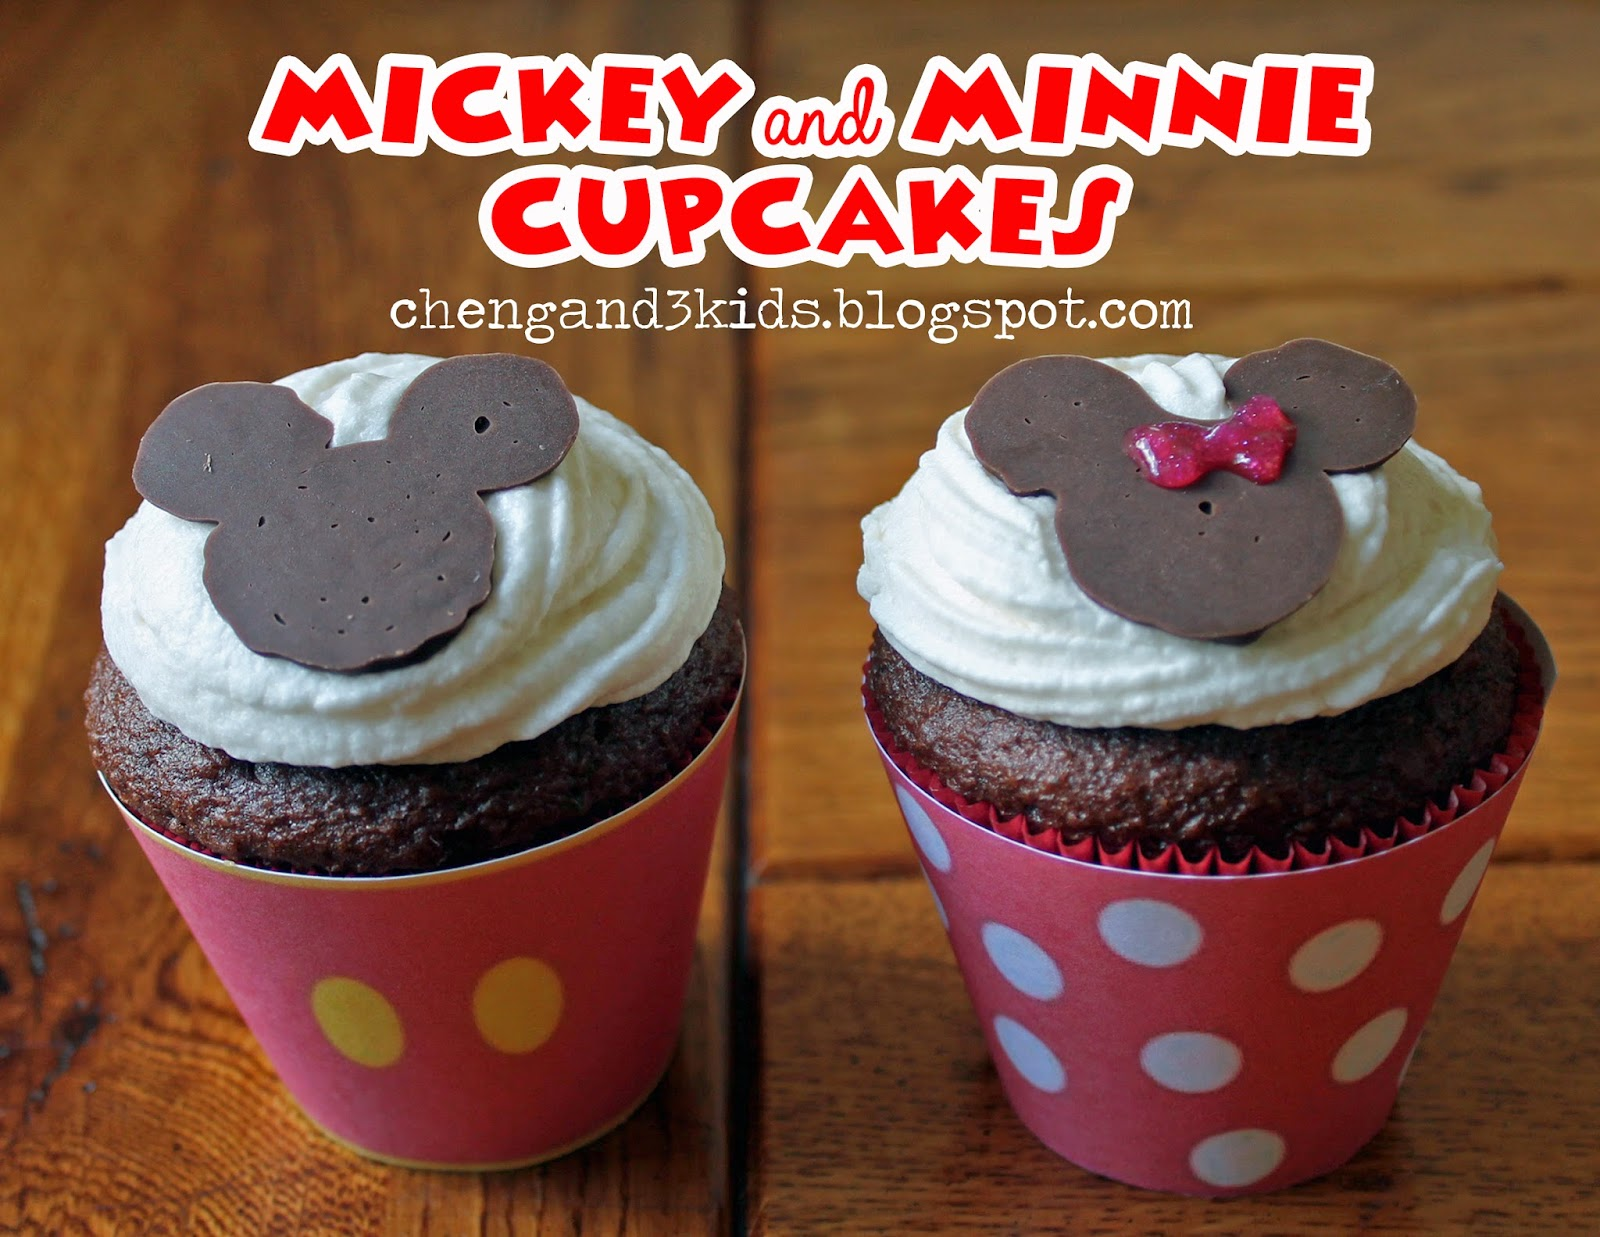 Mickey and Minnie Mouse Cupcakes by chengand3kids.blogspot.com